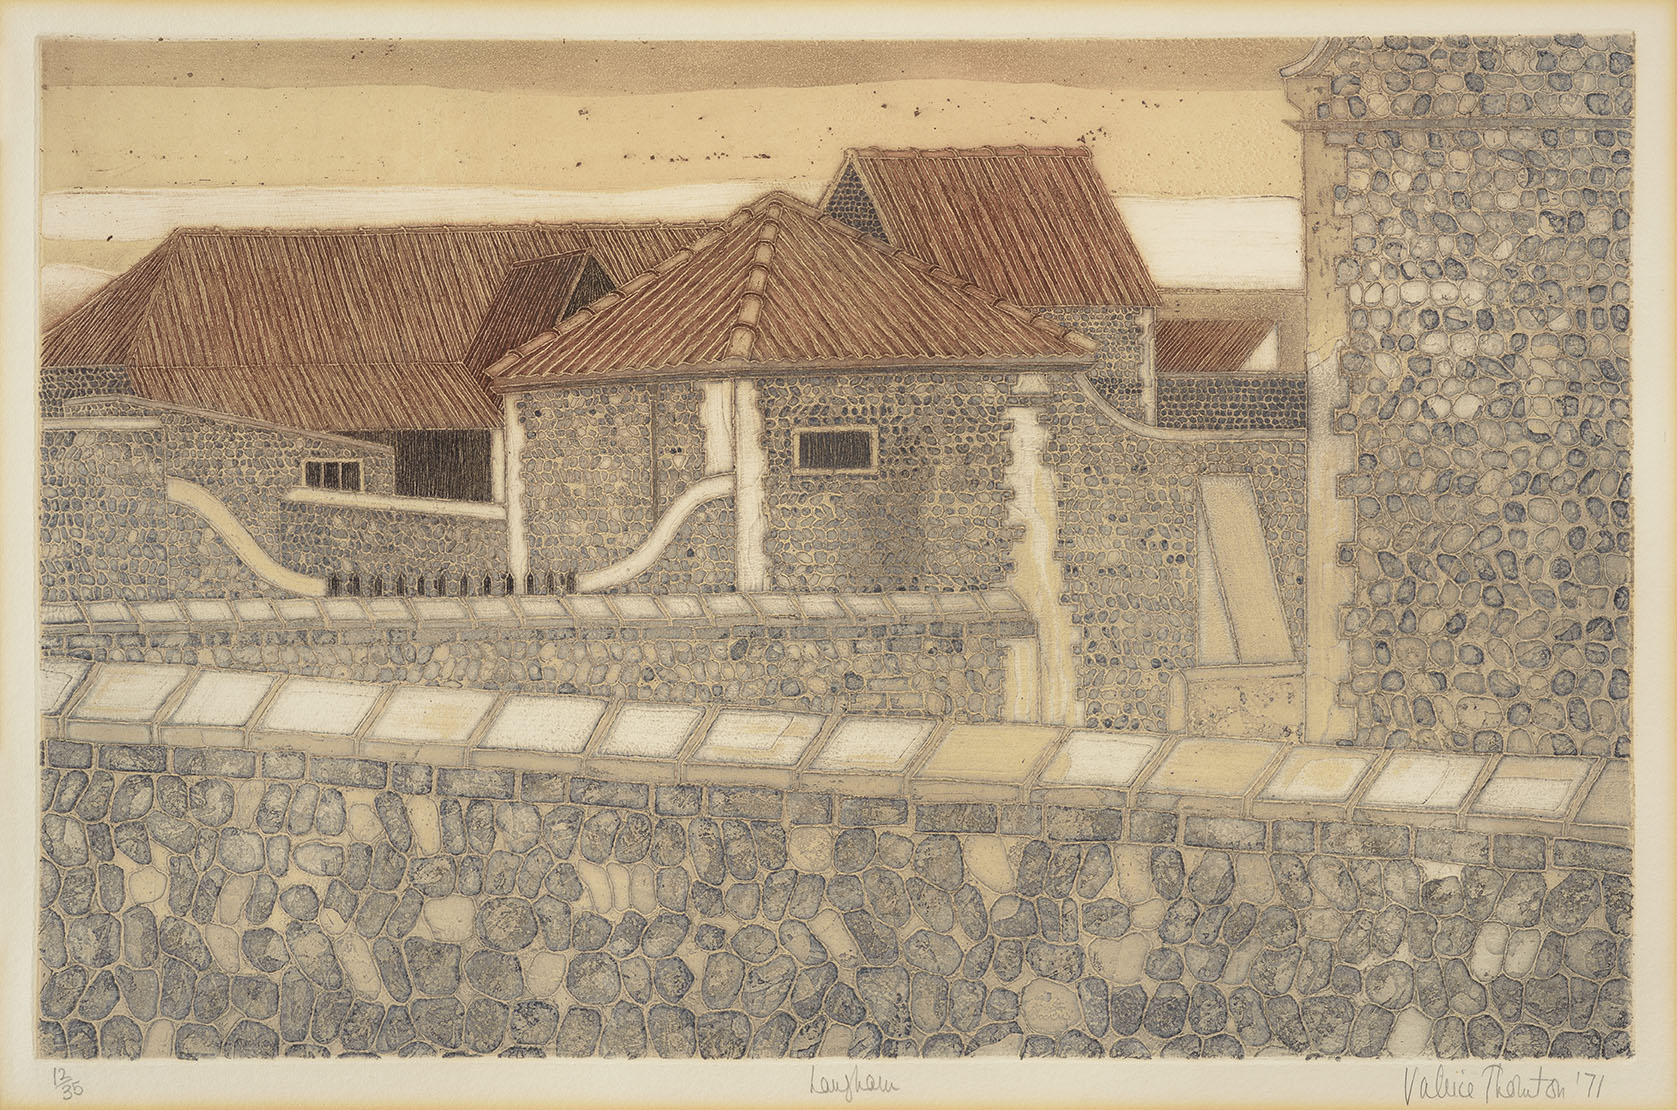 Valerie Thornton NDD, RE (1931-1991)    Langham,  1971, Colour etching on paper, 15 ½ x 24 in, Signed and dated, Edition number: 12/35  [CAS 17]